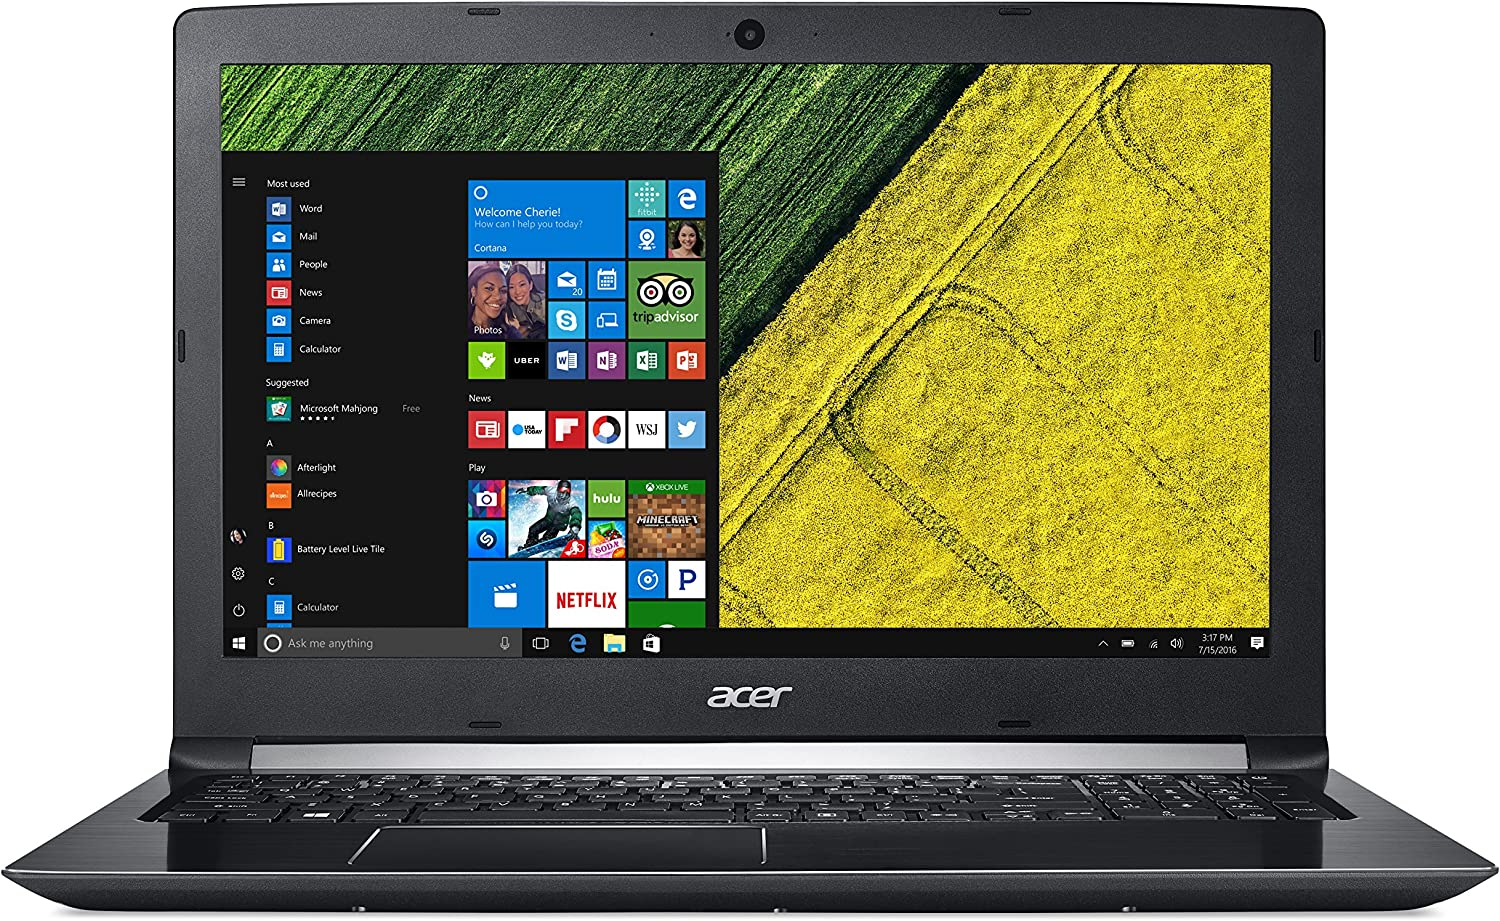 "Acer Aspire 5, 15.6"" Full HD, 8th Gen Intel Core i5-8250U, GeForce MX150, 8GB DDR4 Memory, 256GB SSD, A515-51G-515J"